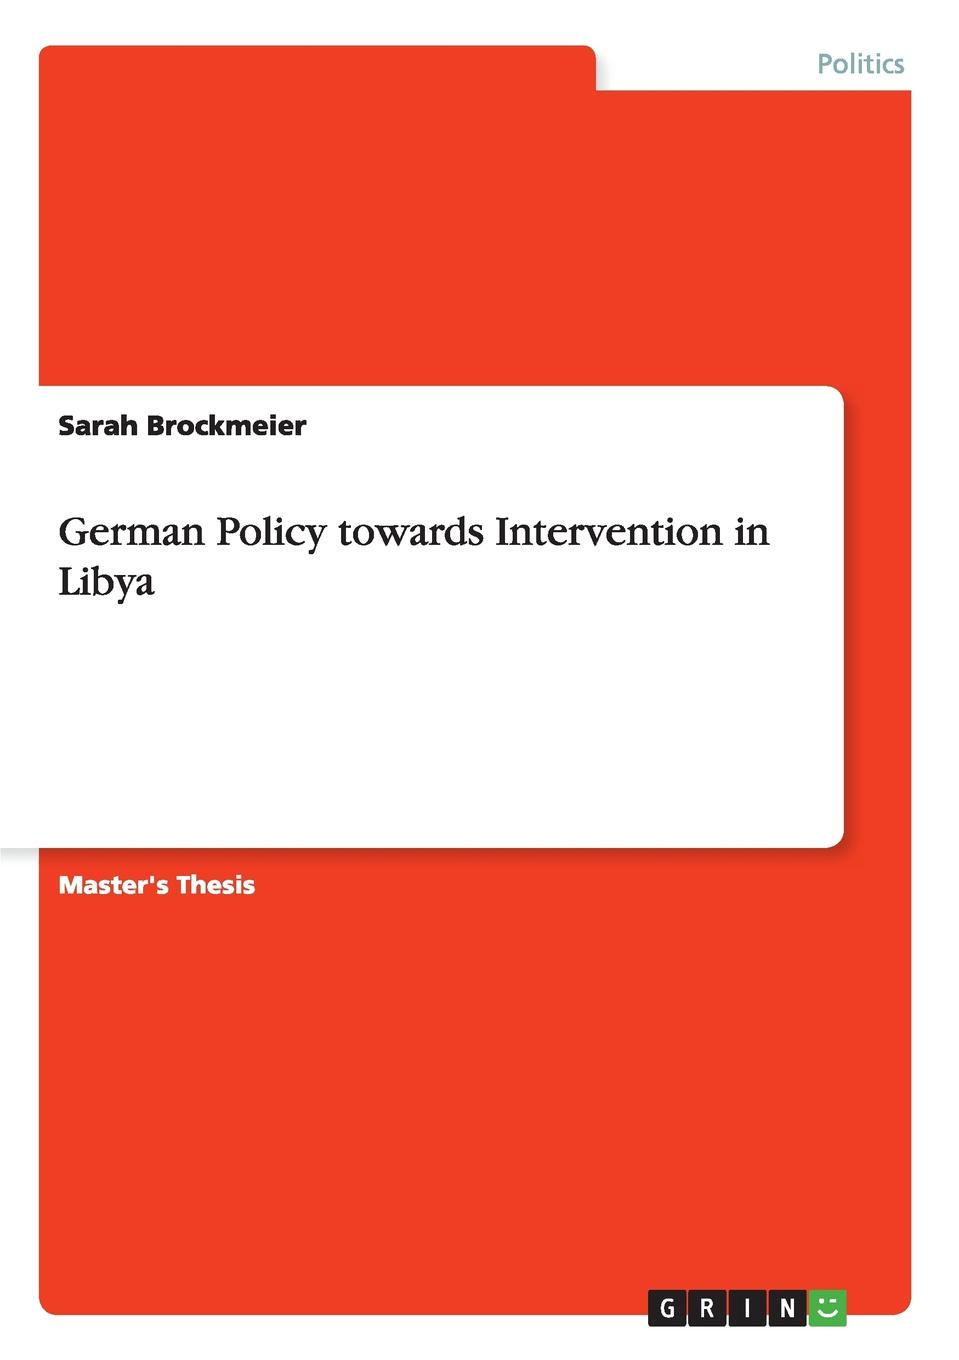 Sarah Brockmeier German Policy towards Intervention in Libya jeffrey lantis s us foreign policy in action an innovative teaching text